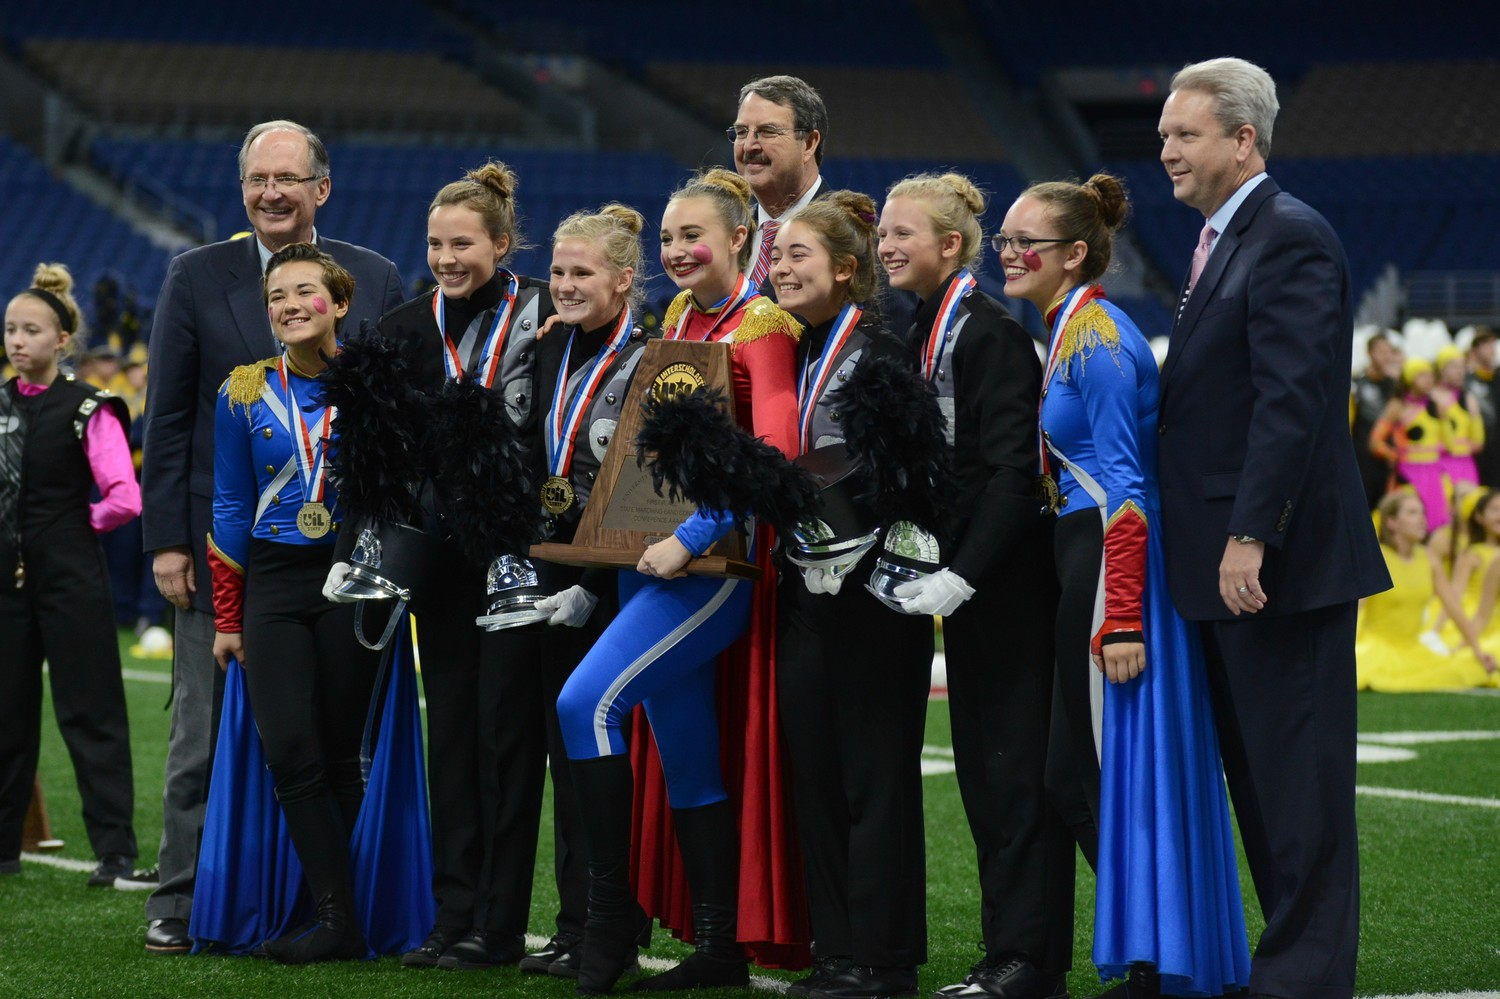 The Cedar Park High School marching band accepts their UIL State Marching Band Championship award at the Alamodome, Nov. 8.